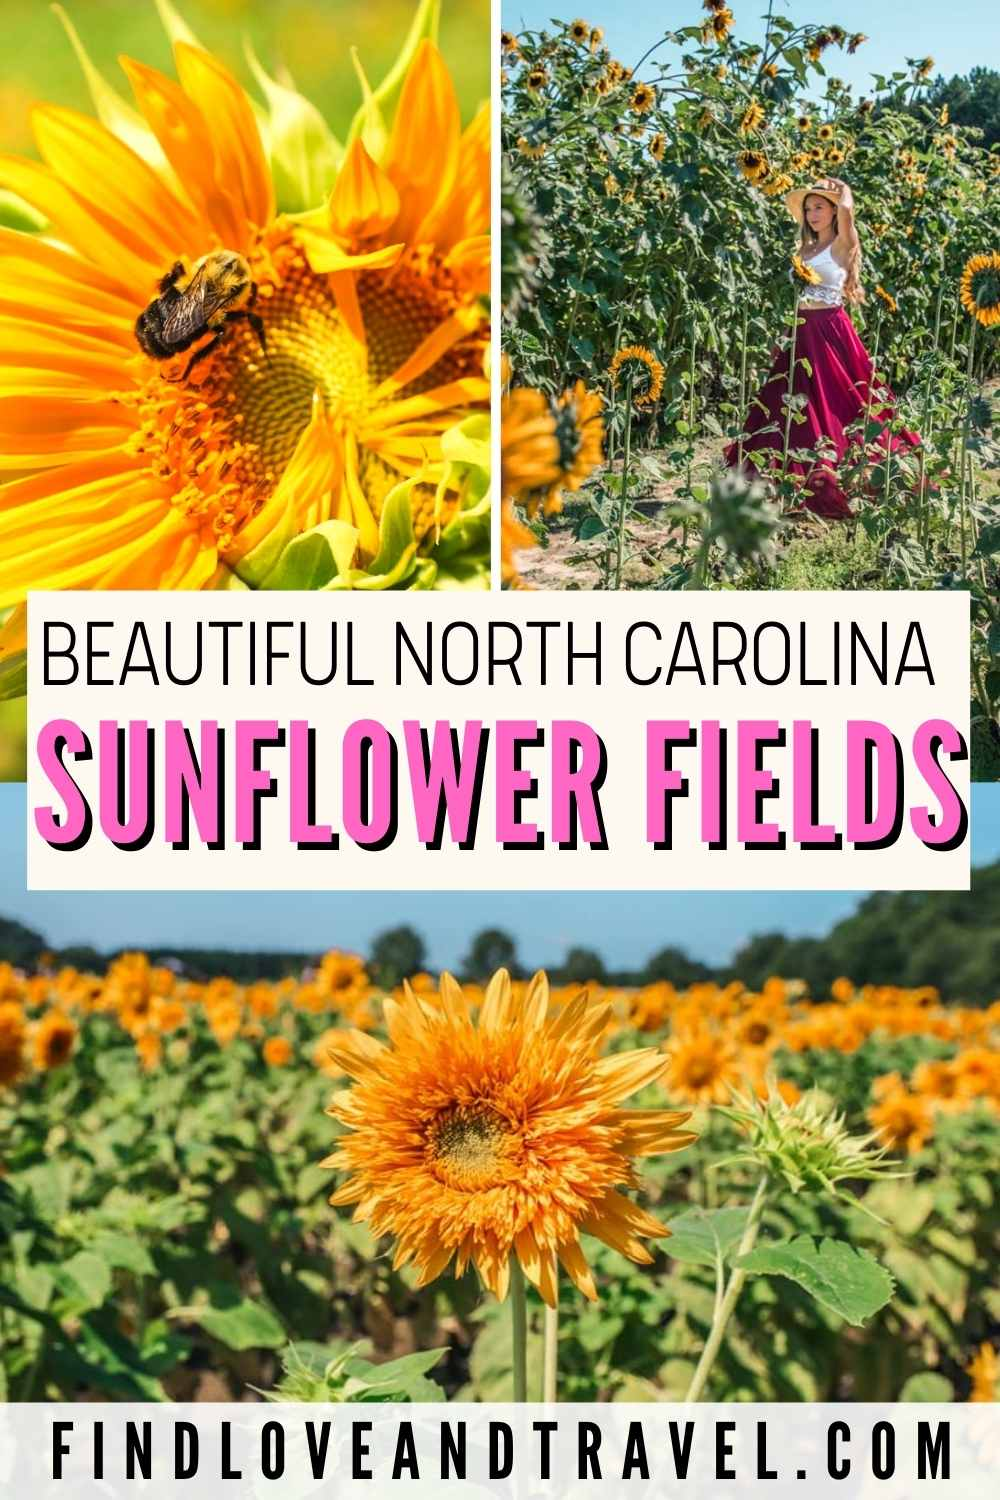 Beautiful Sunflower Patches in NC